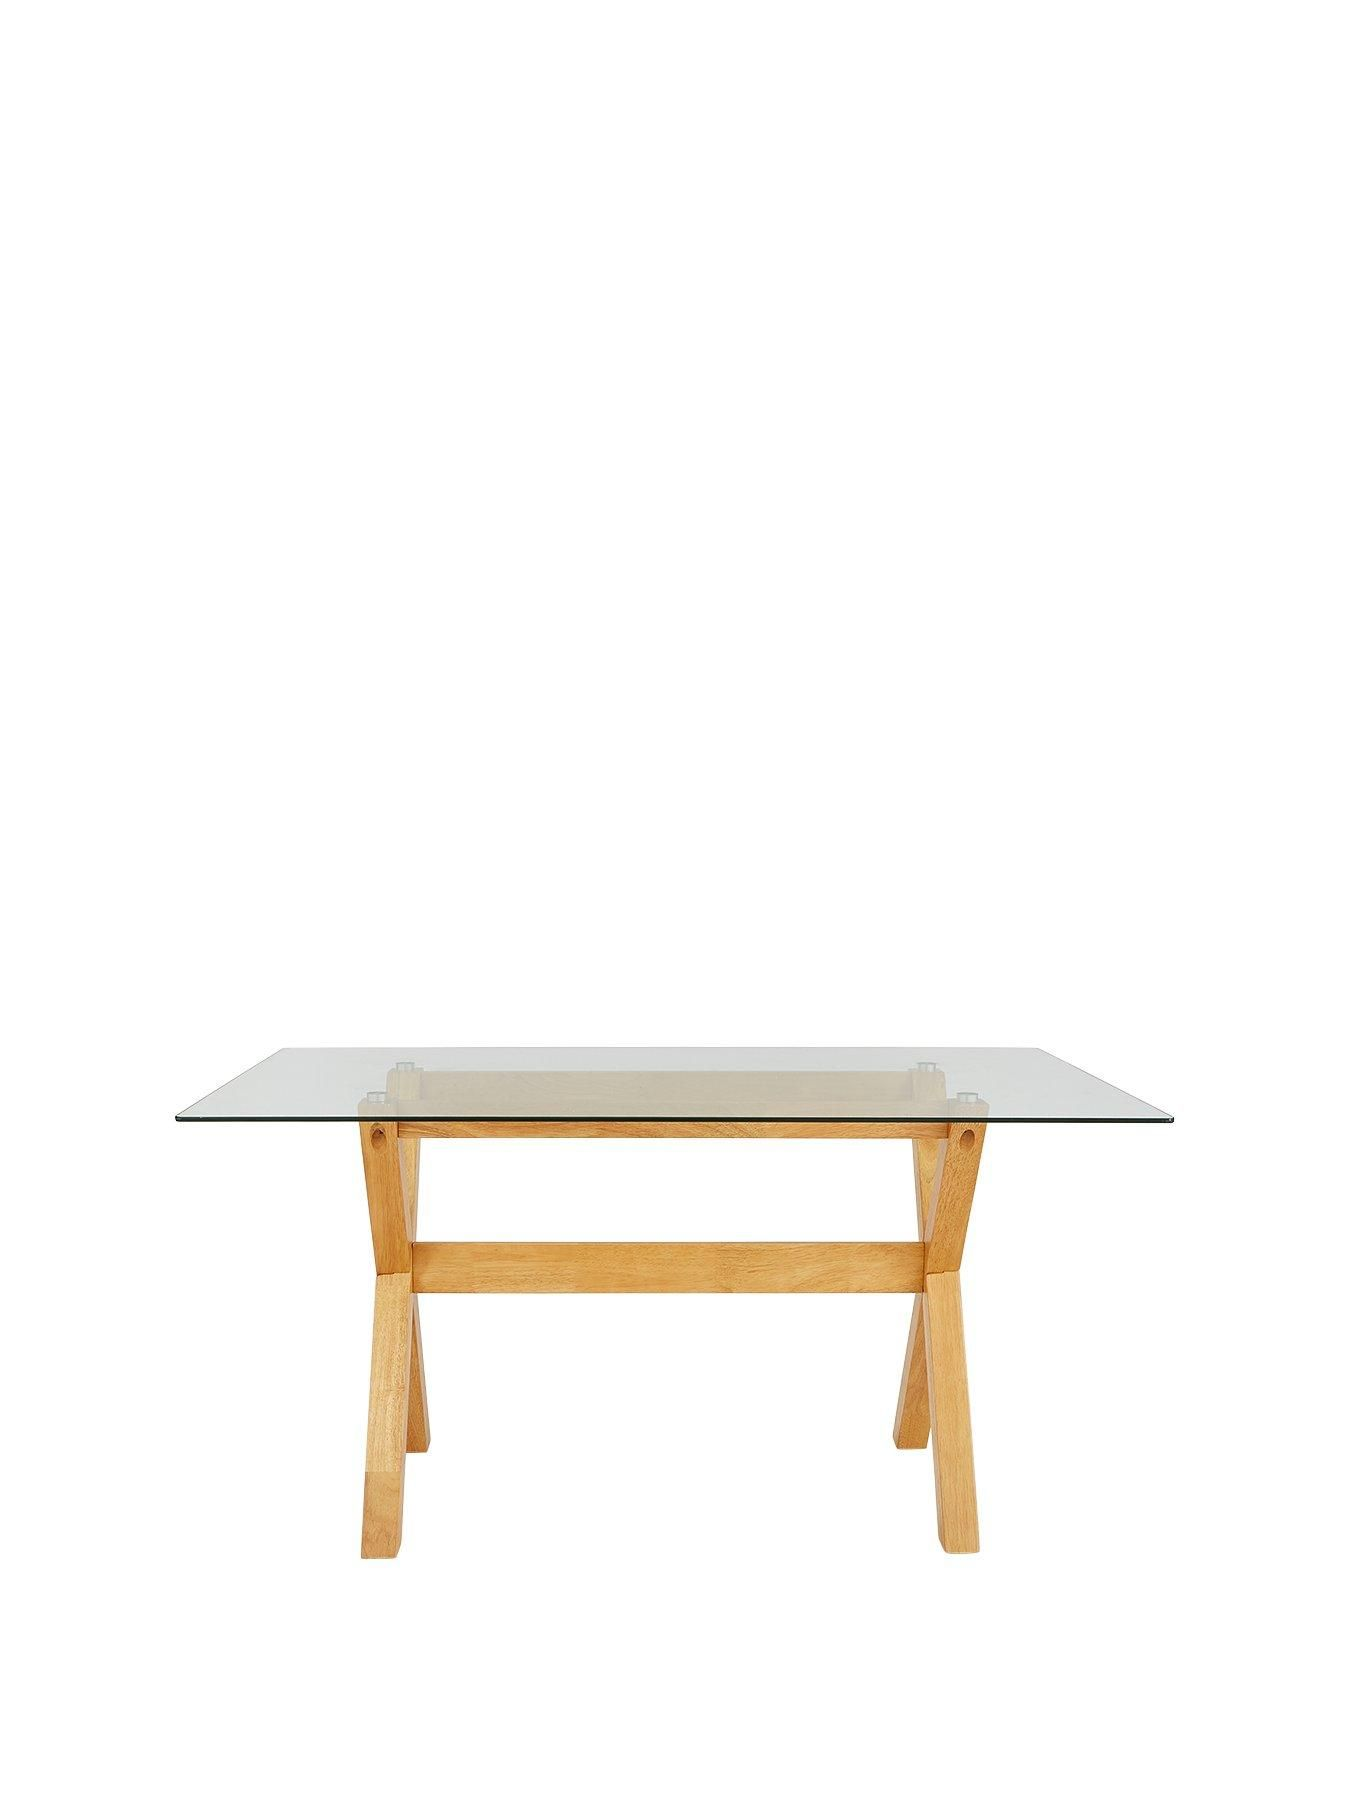 Groovy Venla 150 Cm Solid Wood And Glass Dining Table Kitchen Uwap Interior Chair Design Uwaporg